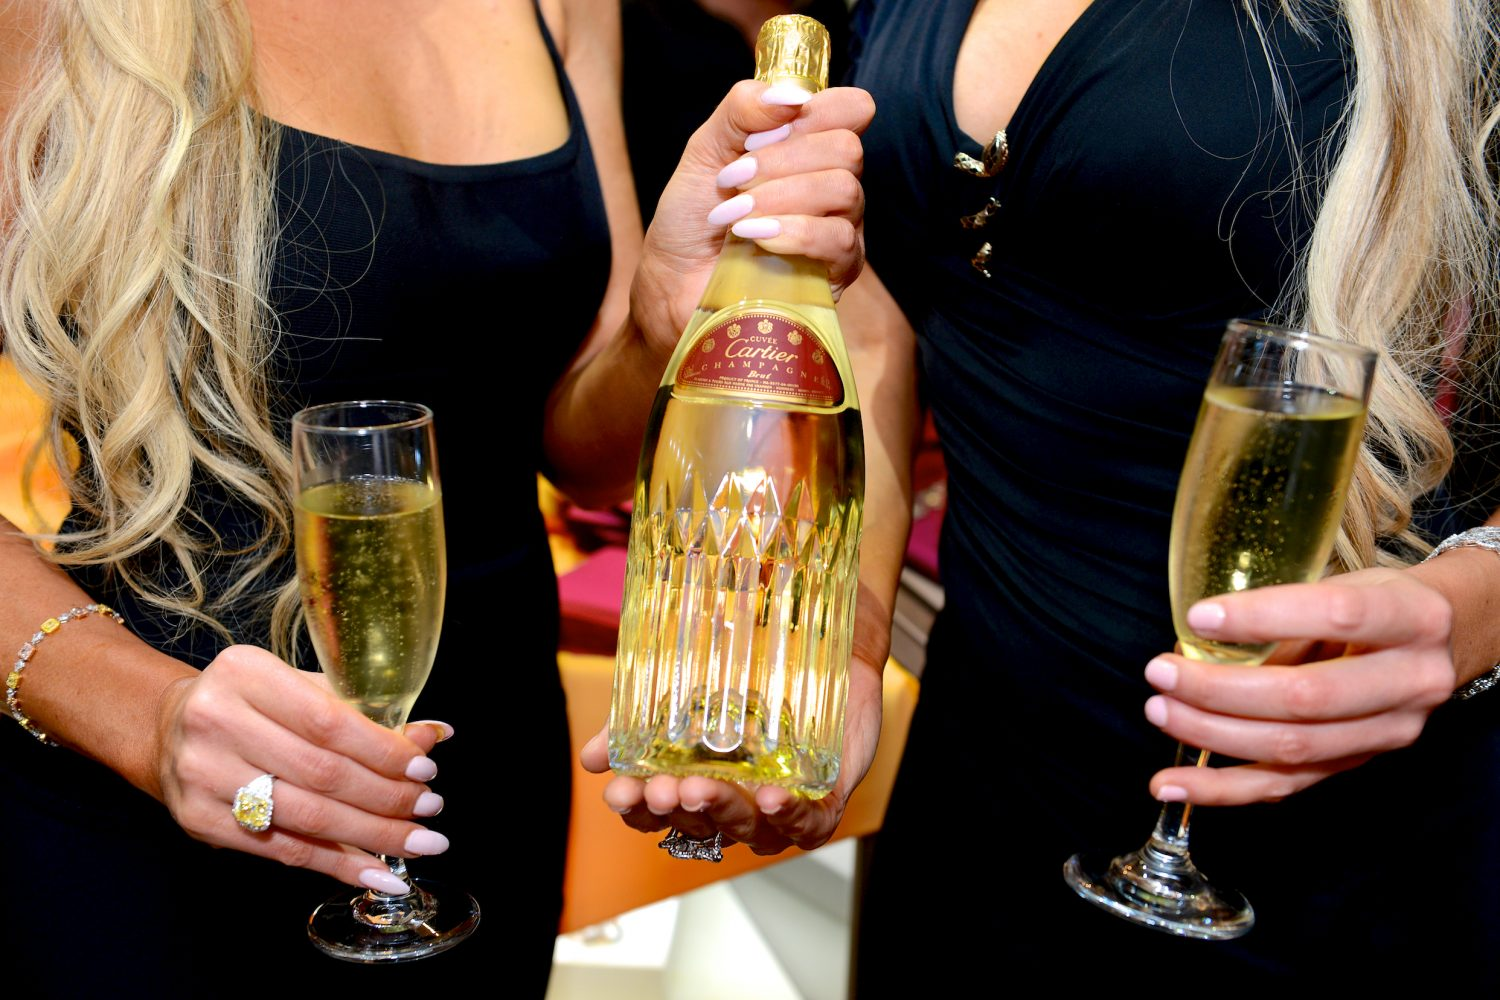 Cartier champagne was served all evening.